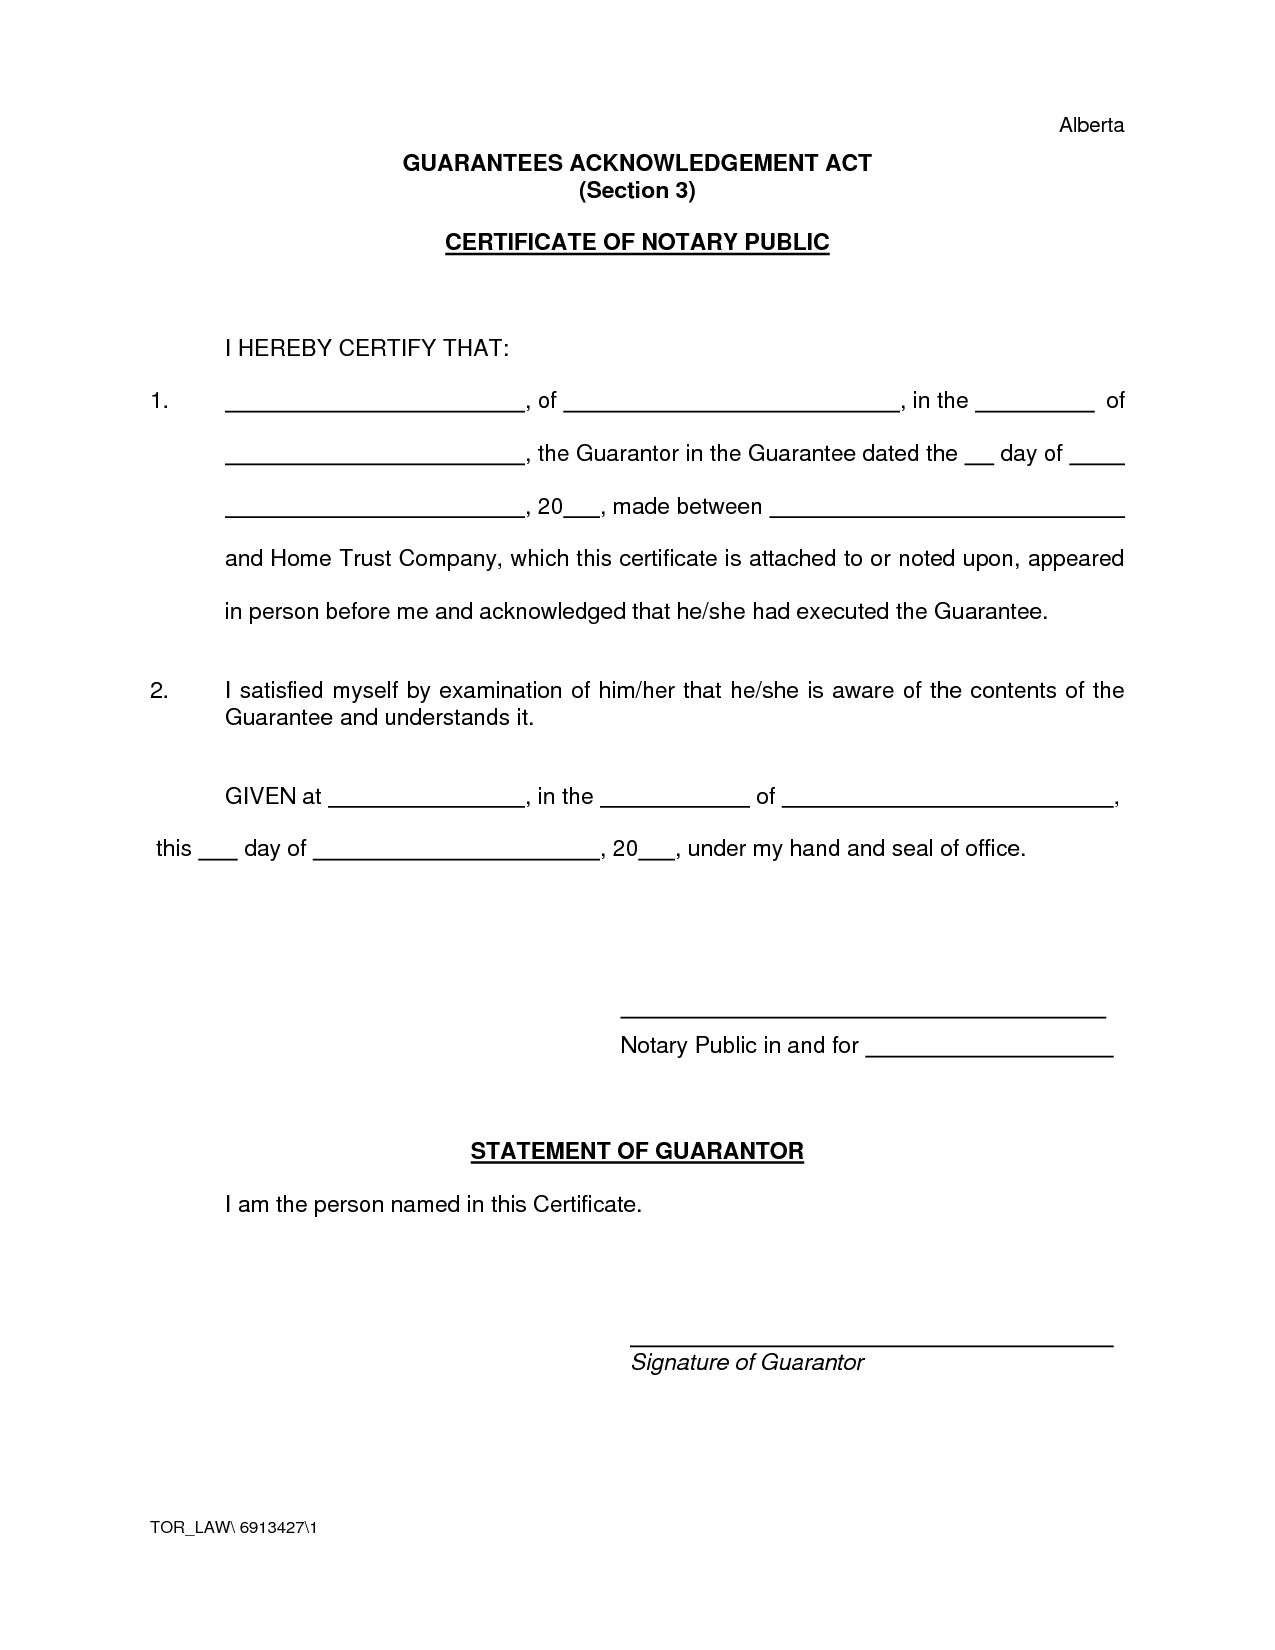 Notary Certificate Of Acknowledgement Form